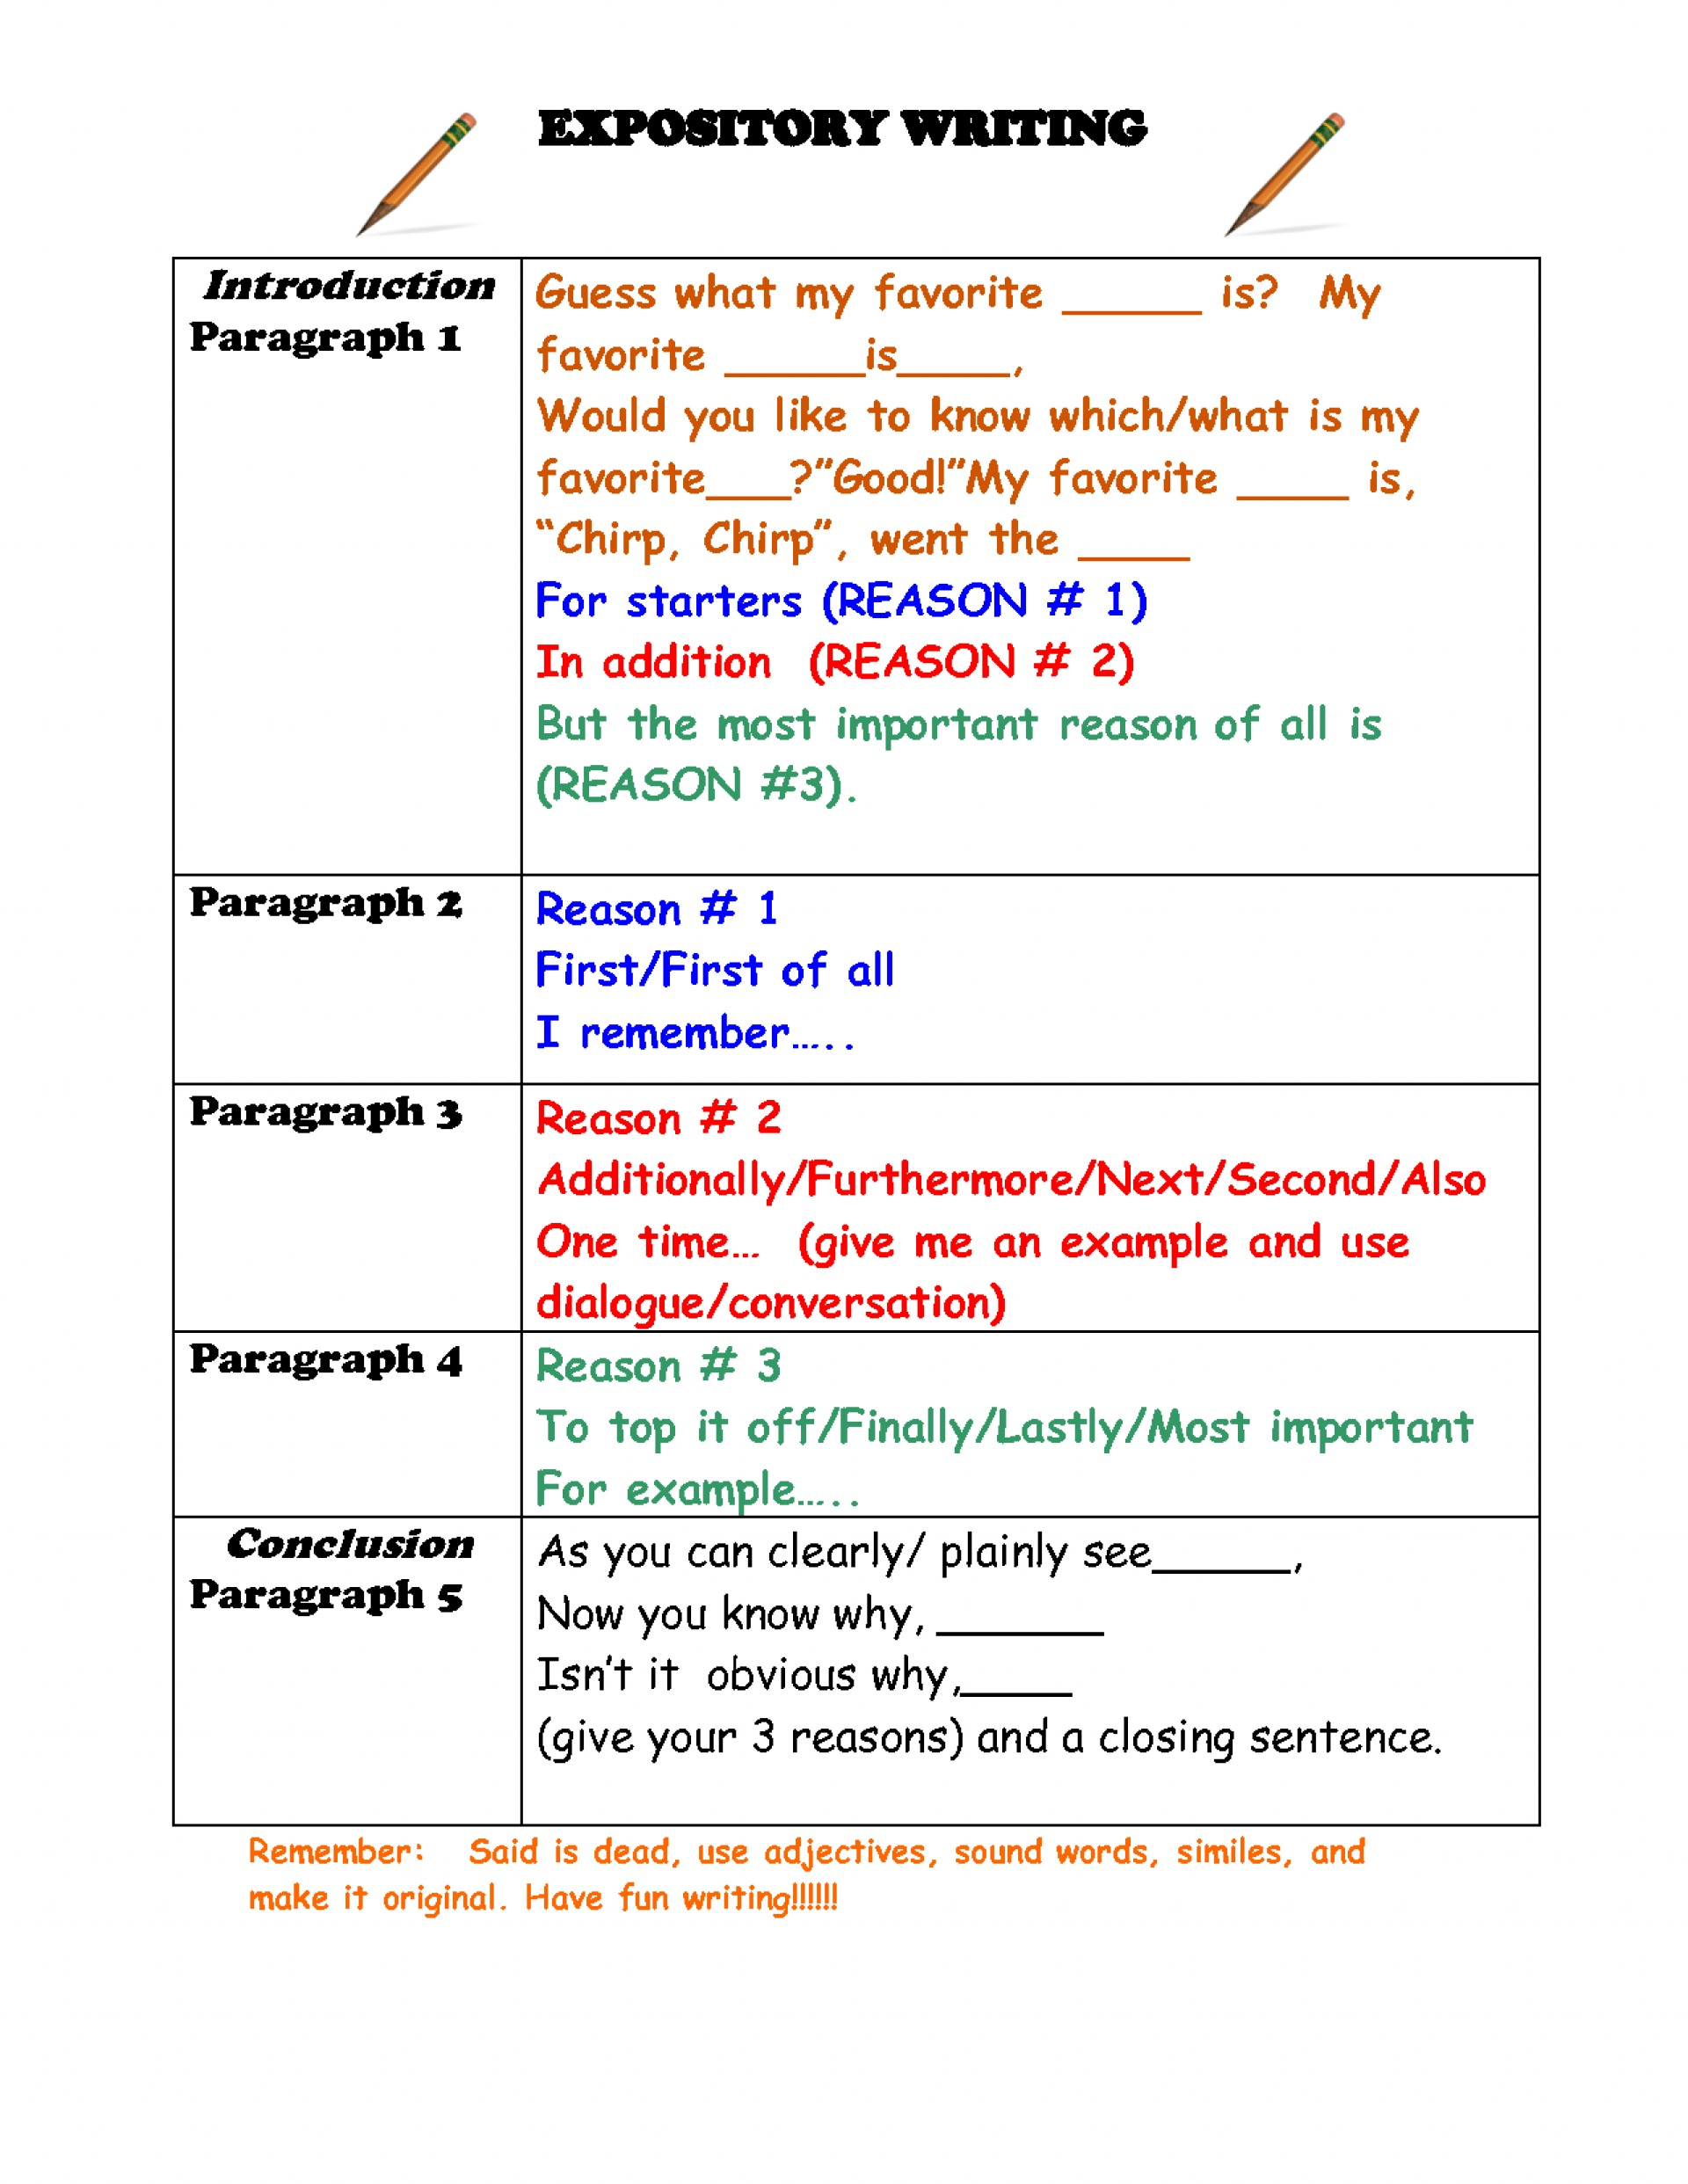 022 Essay Example Paragraph Writing Prompts Middle Incredible 5 School 1920